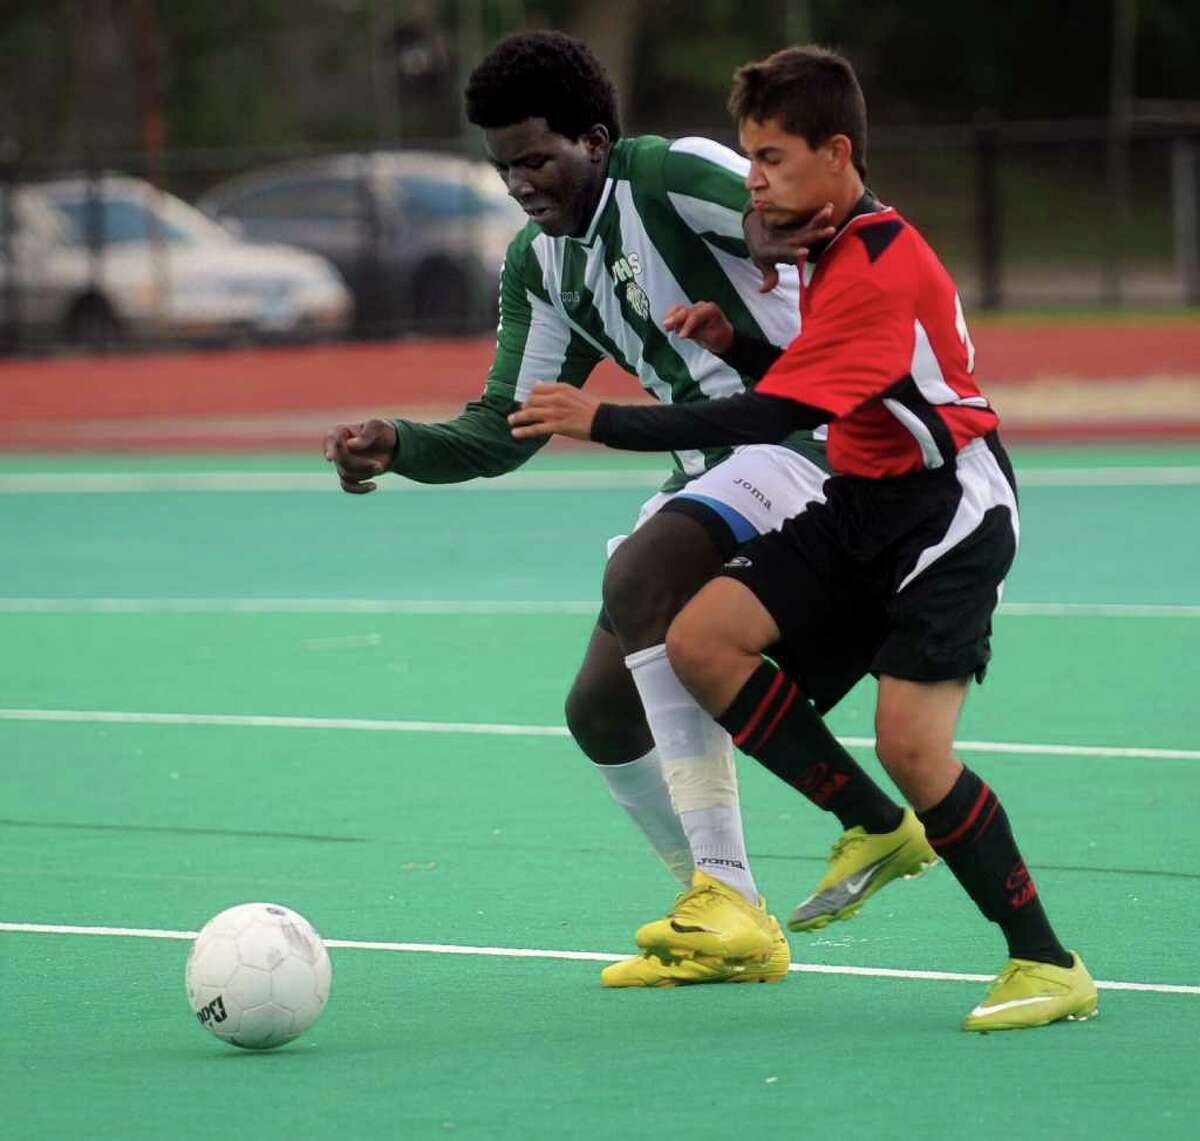 Jairo Escamilla of Bassick, left, and Central's Carlos Araque, right, compete for control of the ball during Wednesday's game at Bridgeport Central High School on September 6, 2010.